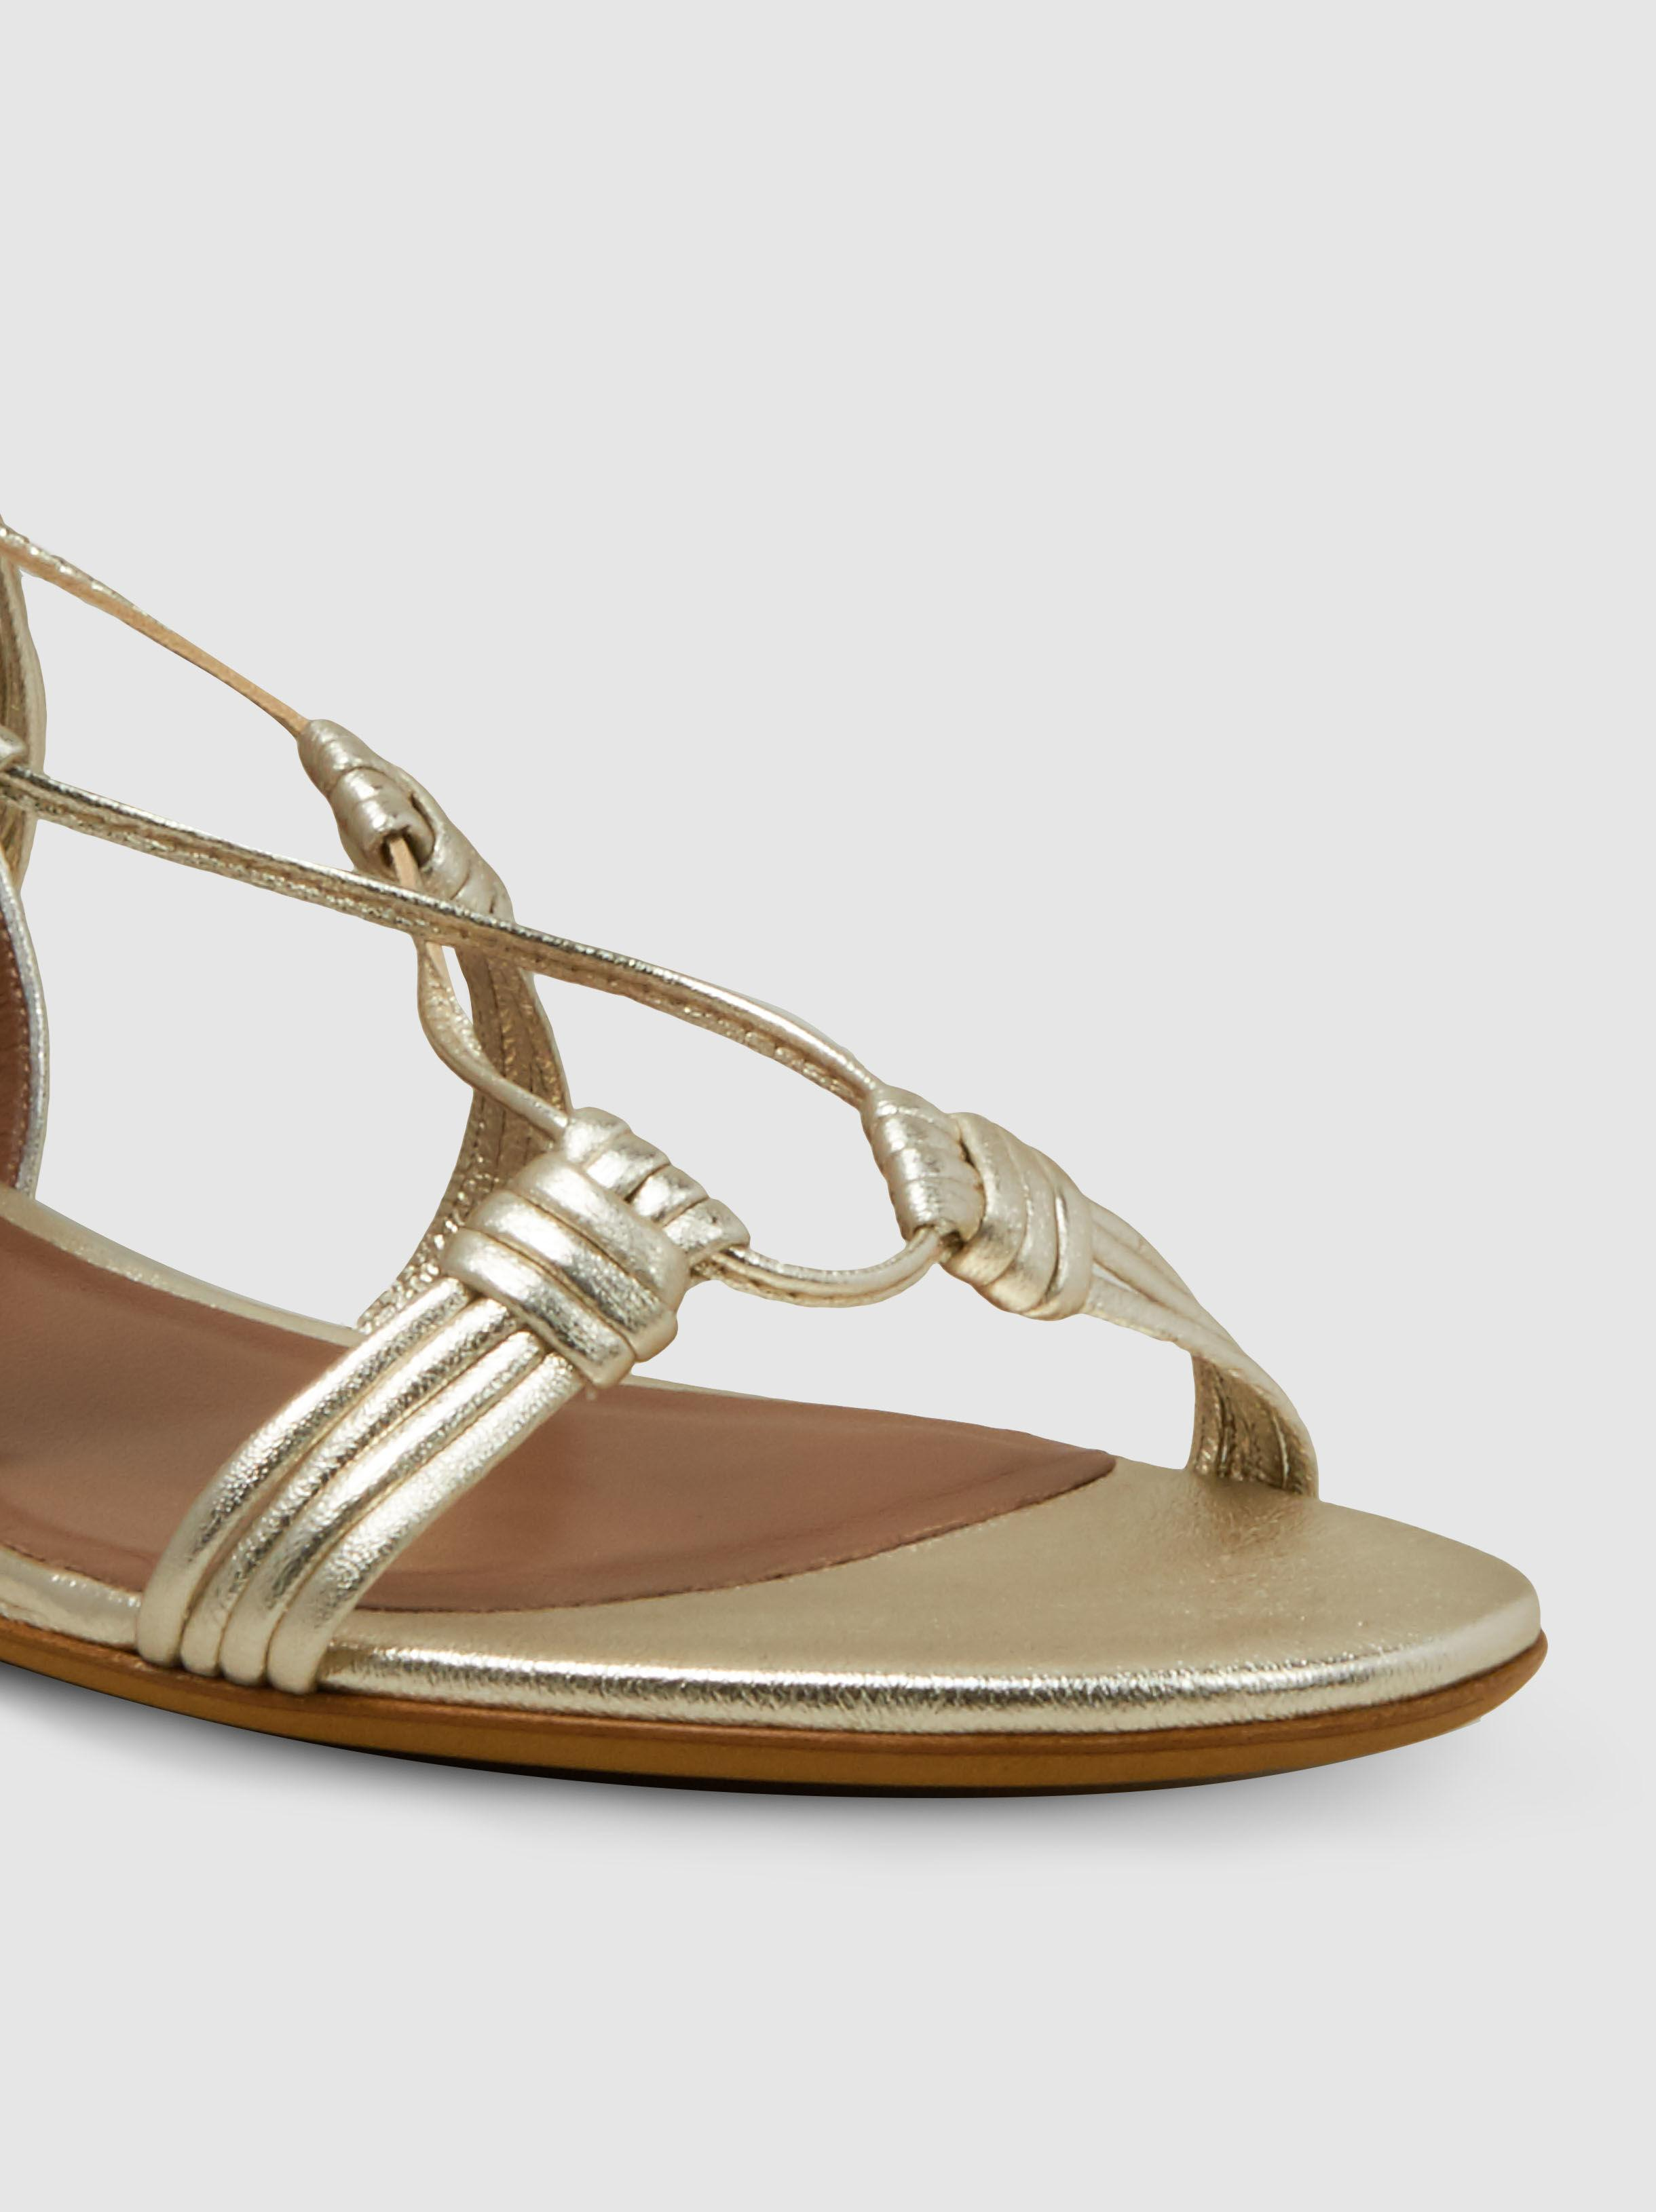 Tabitha Simmons Jax Tasselled Metallic-Leather Sandals VxGTbmPua